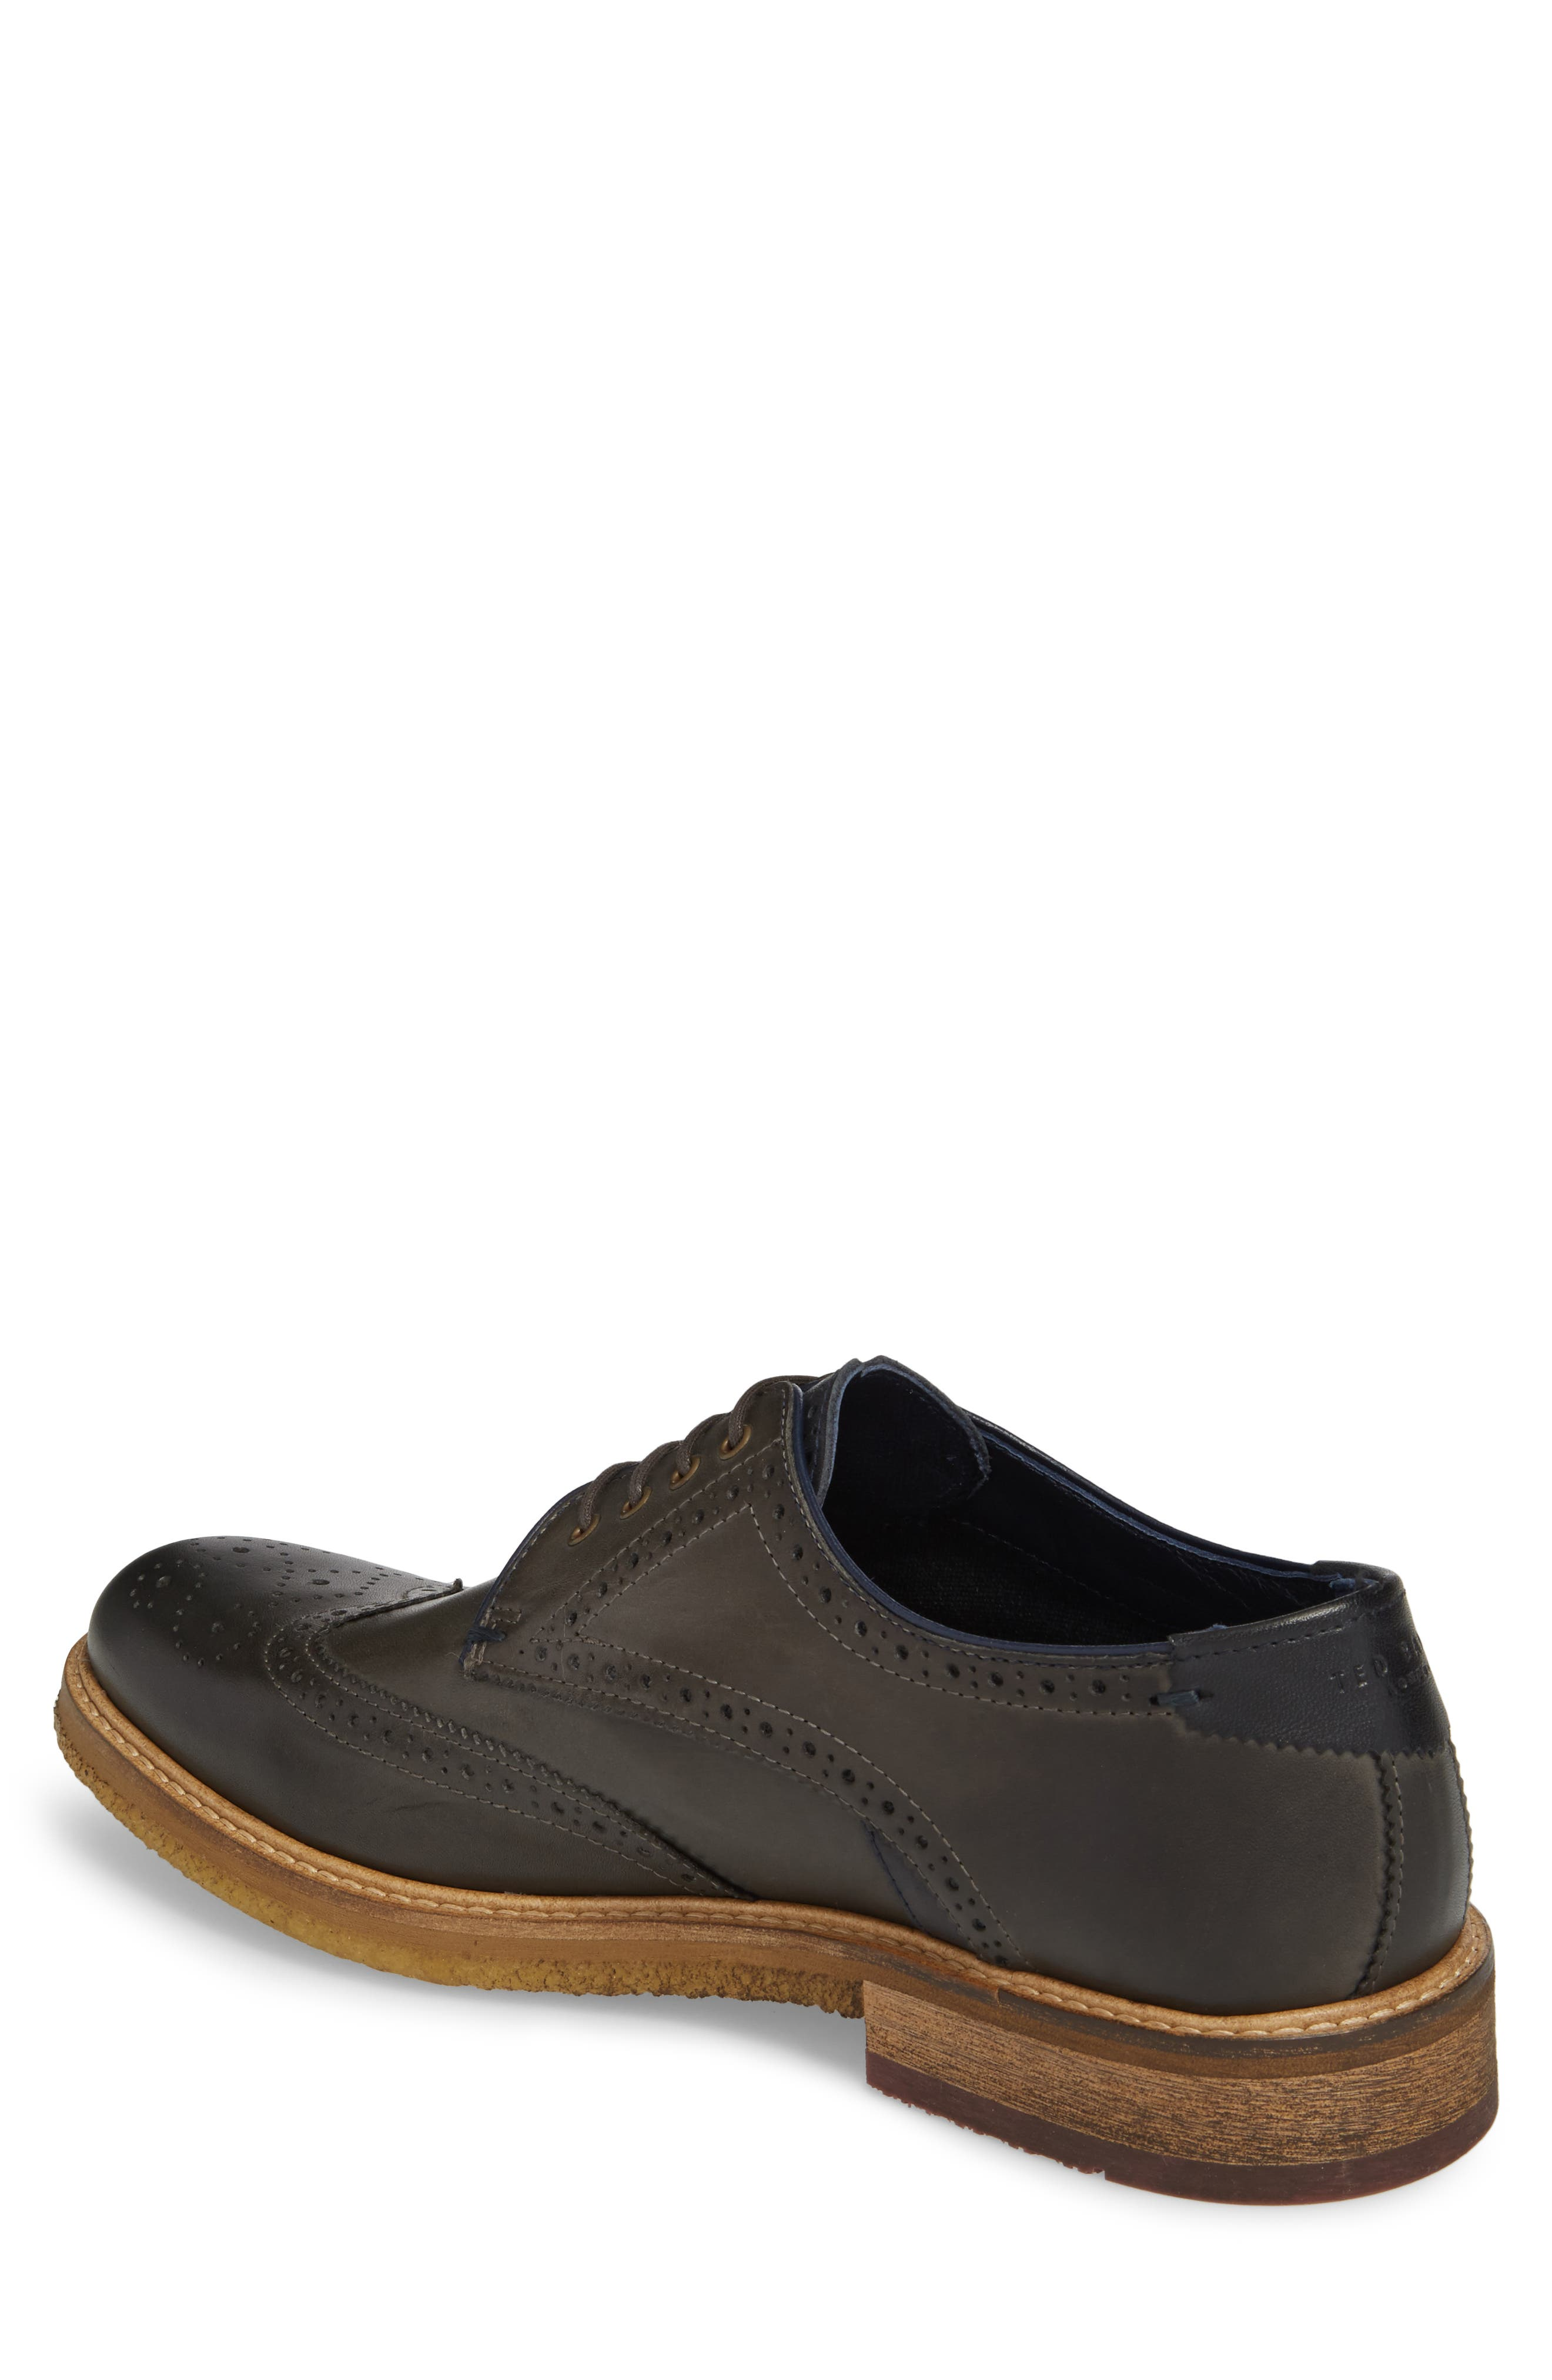 TED BAKER LONDON,                             Prycce Wingtip Derby,                             Alternate thumbnail 2, color,                             031